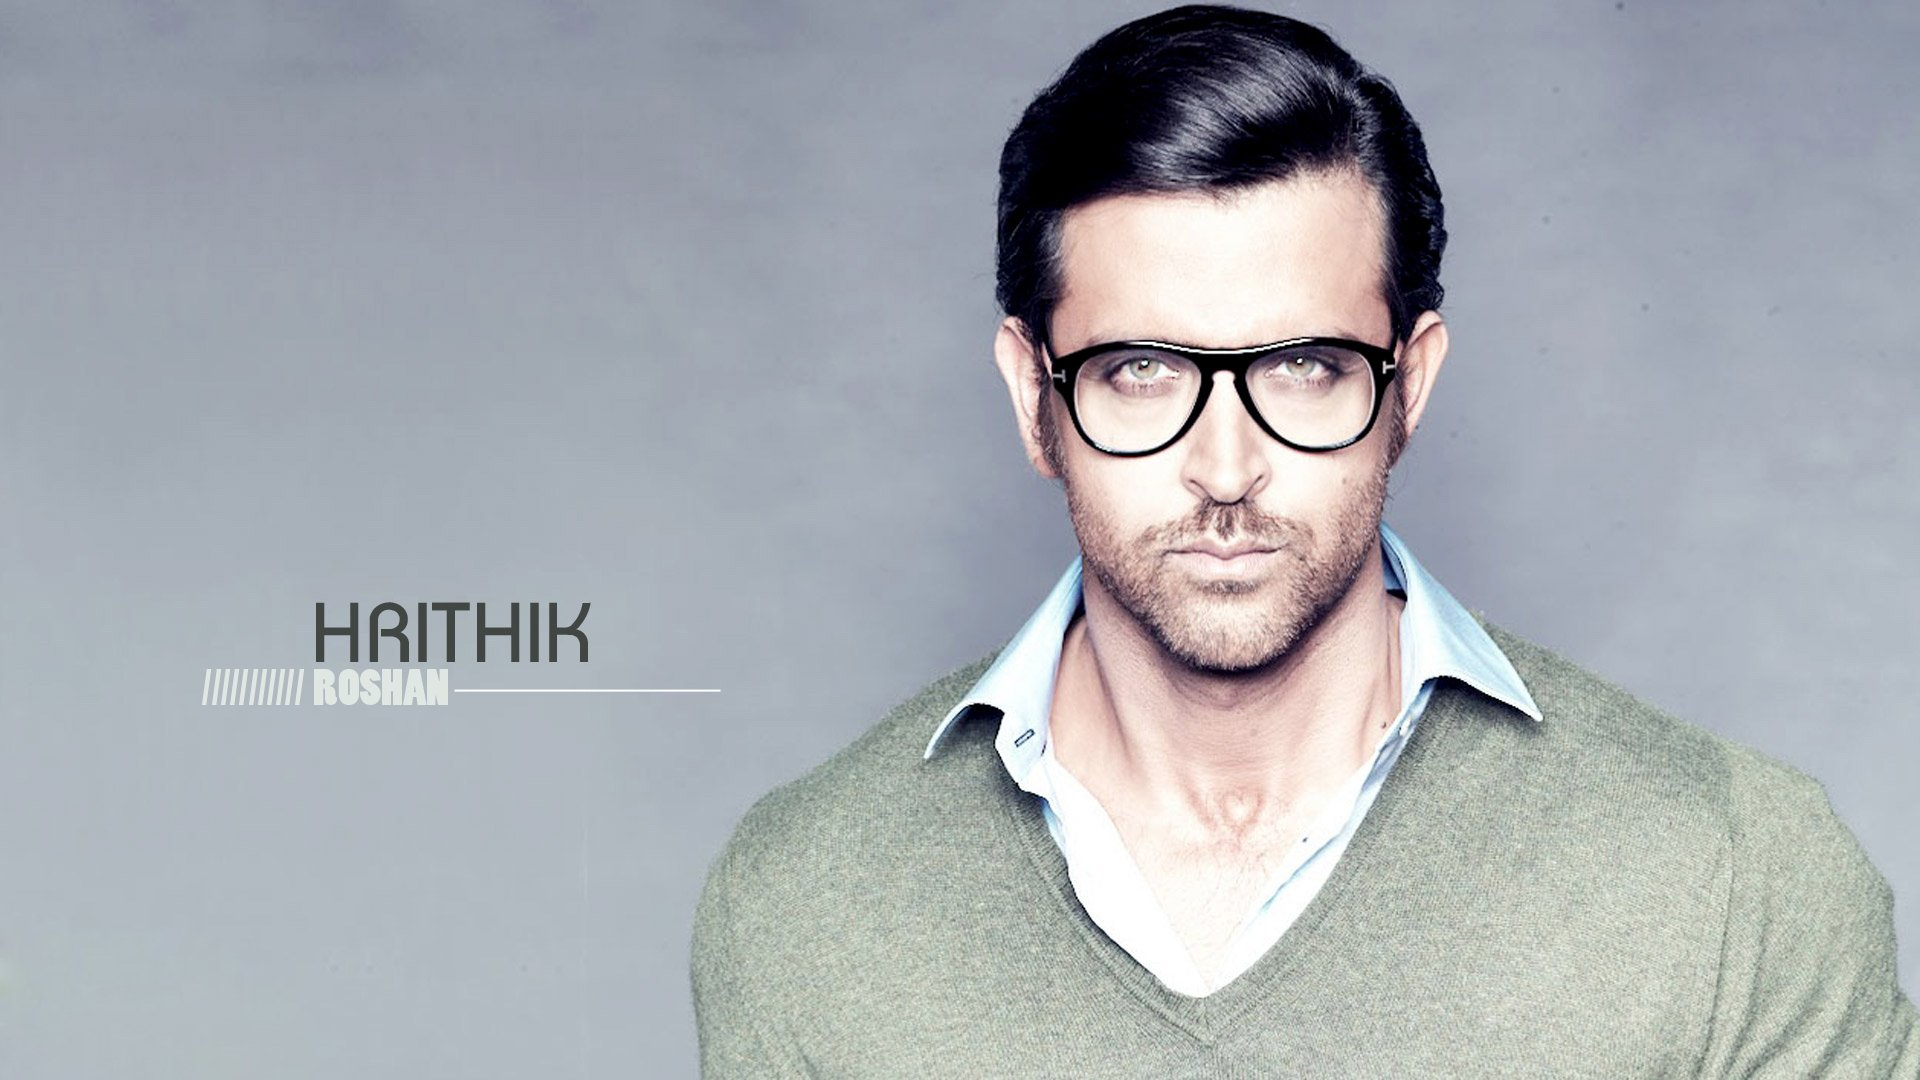 hrithik roshan full hd wallpaper and background image | 1920x1080